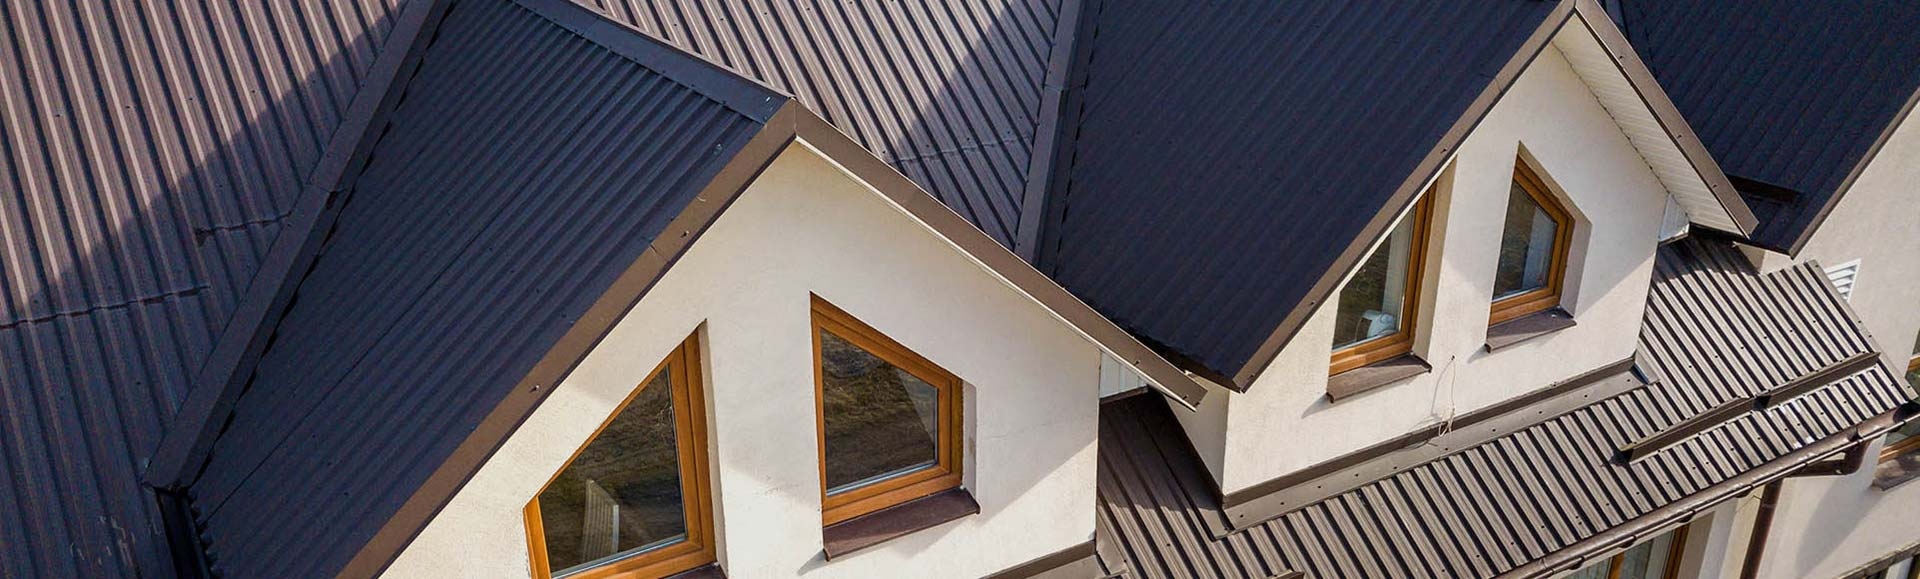 %Roofs and Gutters